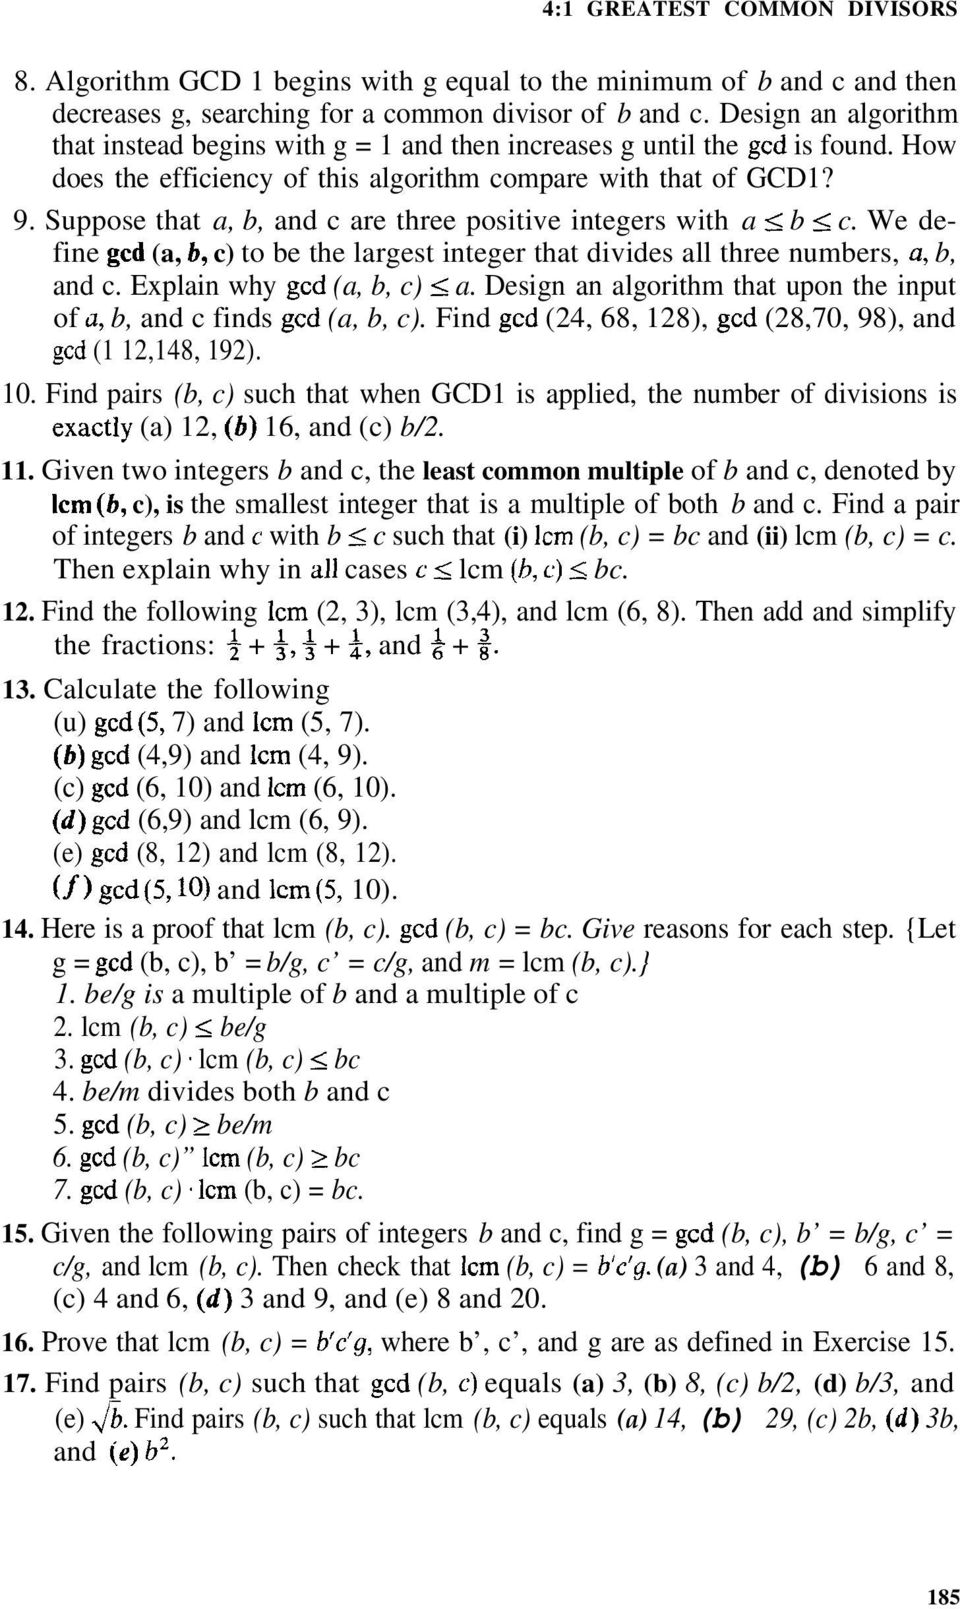 Suppose that a, b, and c are three positive integers with a < b < c. We define gcd (a, b, c) to be the largest integer that divides all three numbers, a, b, and c. Explain why gcd (a, b, c) < a.